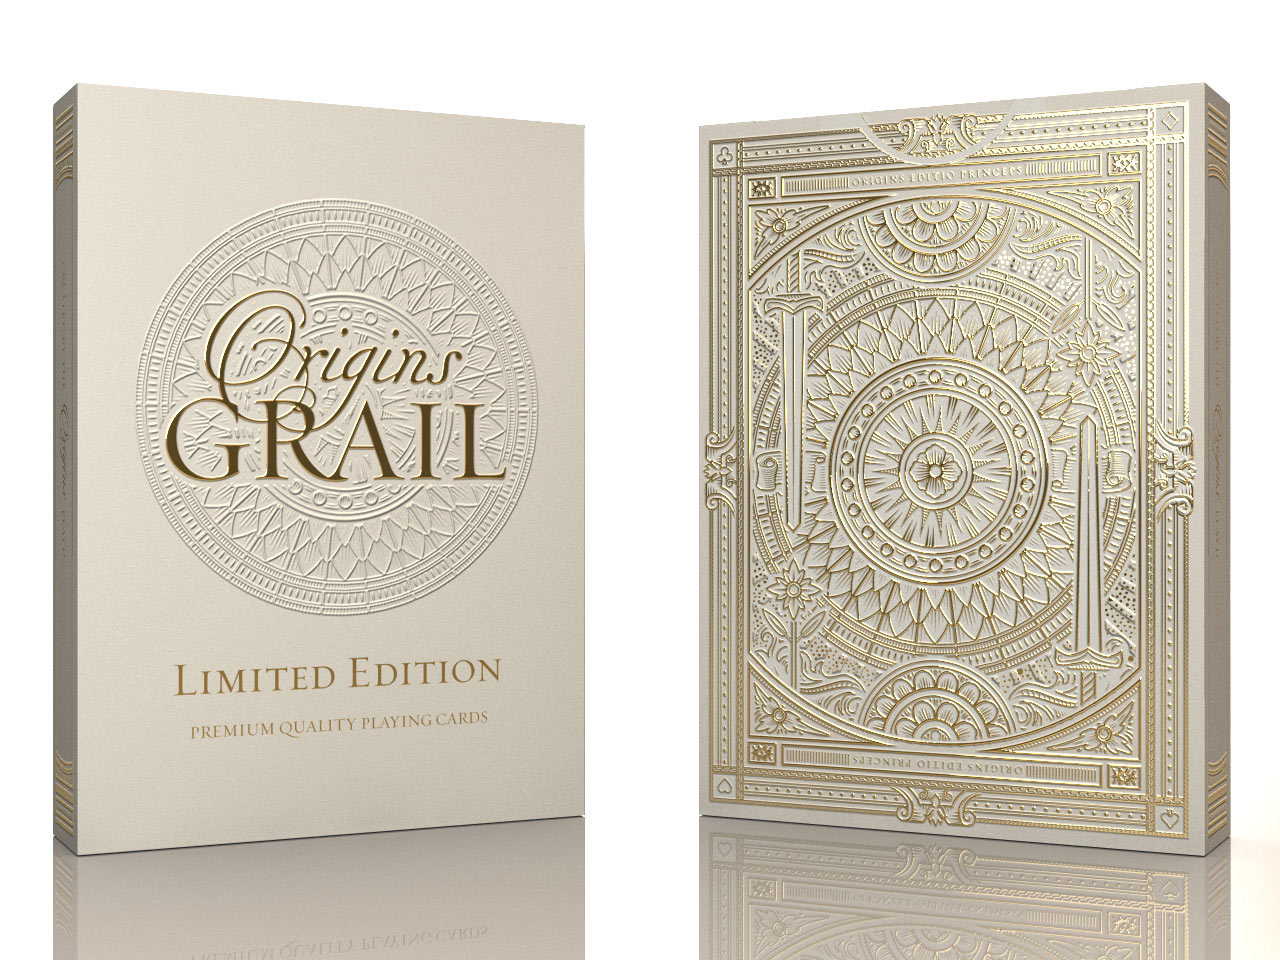 The Grail Limited Edition